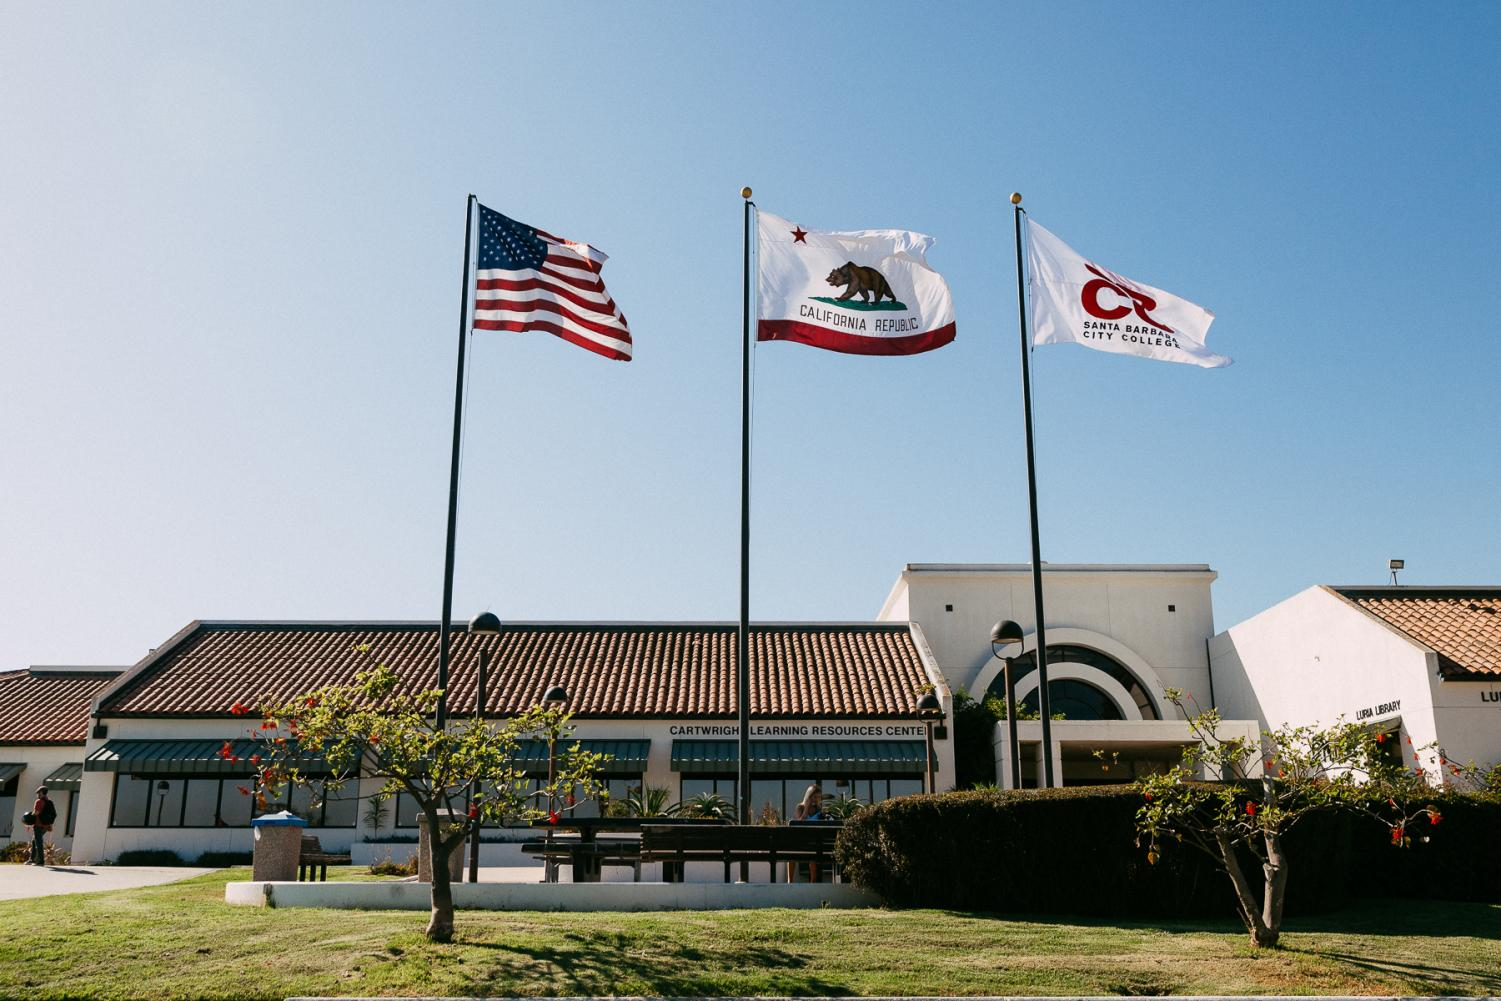 Flags dance in the afternoon breeze in front of the Cartwright Learning Resources Center on Thursday, Aug. 29, 2019, on West Campus in Santa Barbara, Calif.